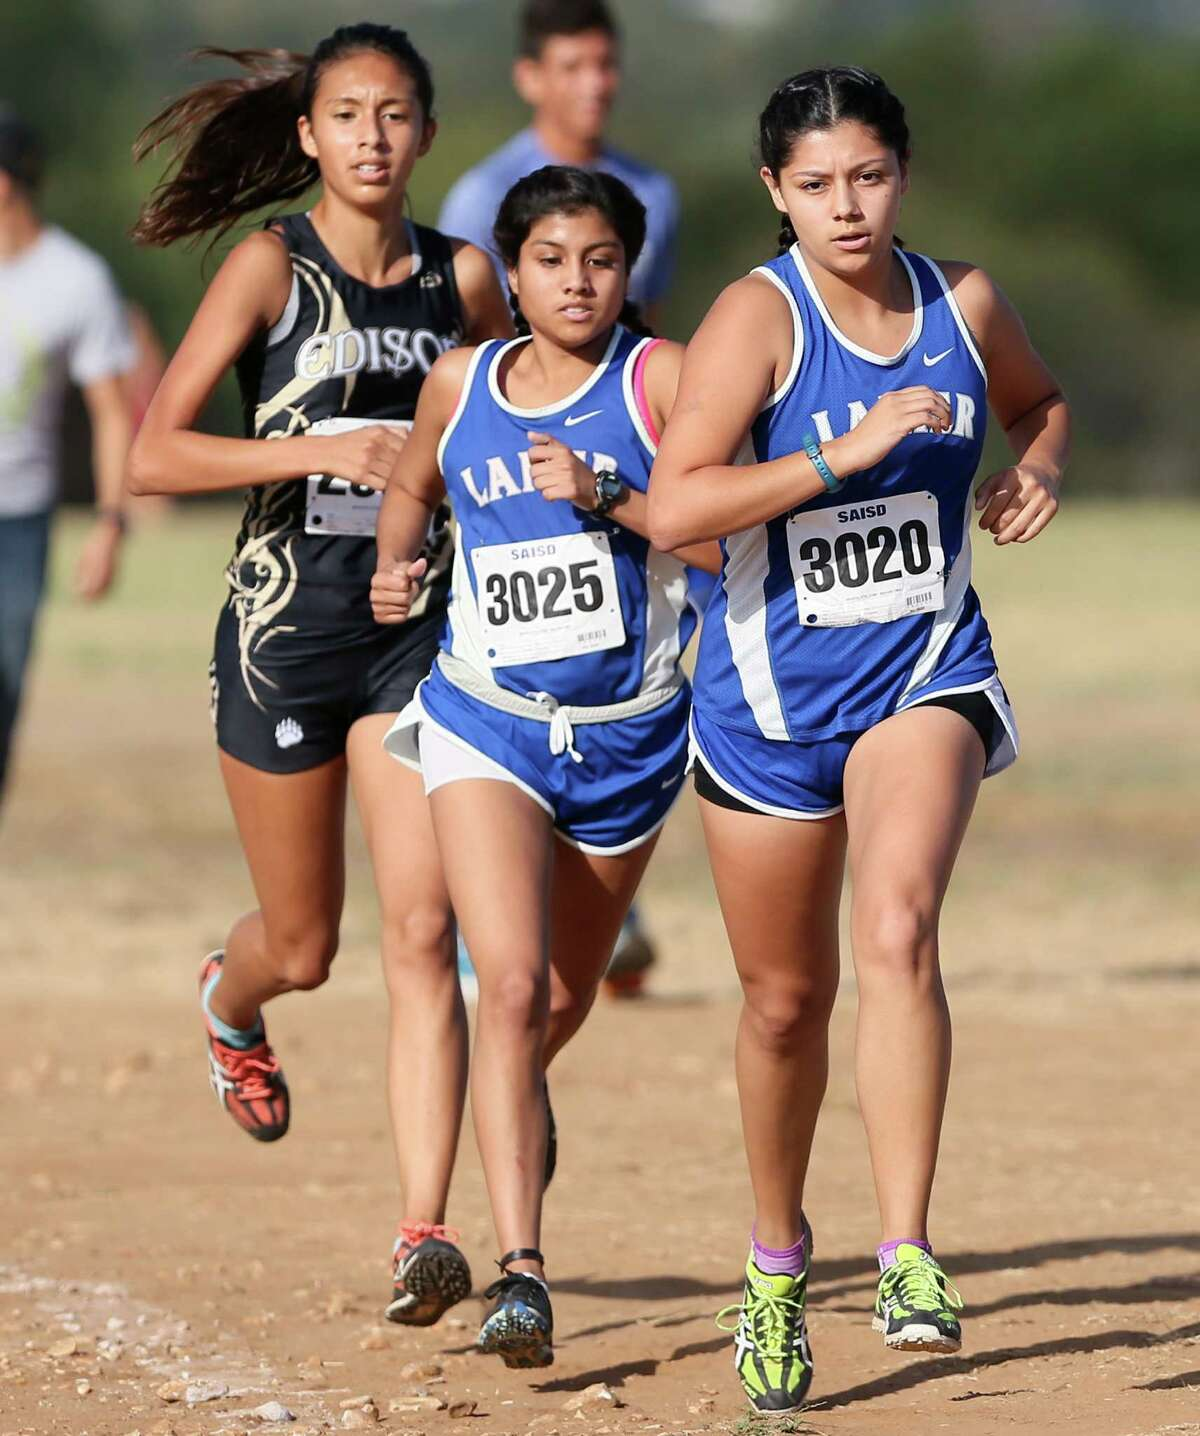 Lanier's JoAnna Benavidez (from right) leads teammate Jovana Espinoza and Edison's Litzy Flores in the varsity girls 3 mile run during the District 28-5A cross country meet at San Antonio State Hospital on Friday, Oct. 16, 2015. Benavidez won the event with a time of 18:59.91. Flores finished second and Espinoza fourth. MARVIN PFEIFFER/ mpfeiffer@express-news.net